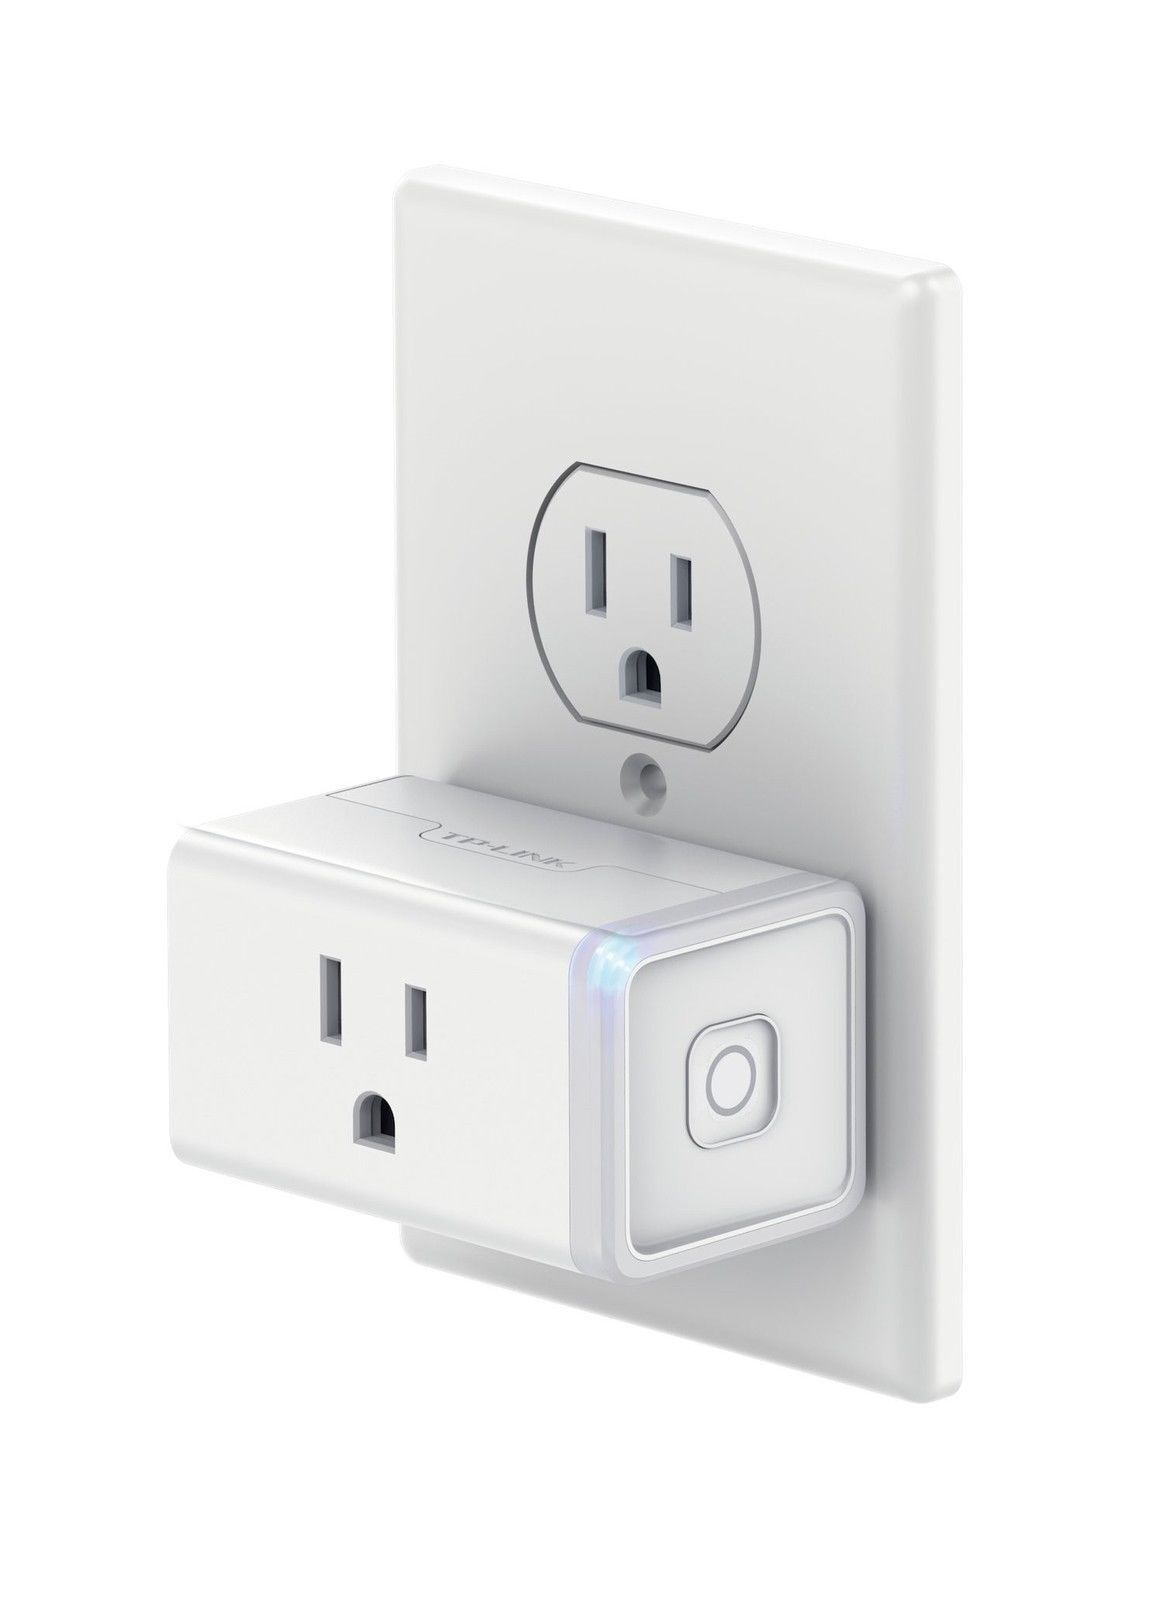 Smart Plug - Tp-Link HS105 Wi-Fi Mini Plug in White